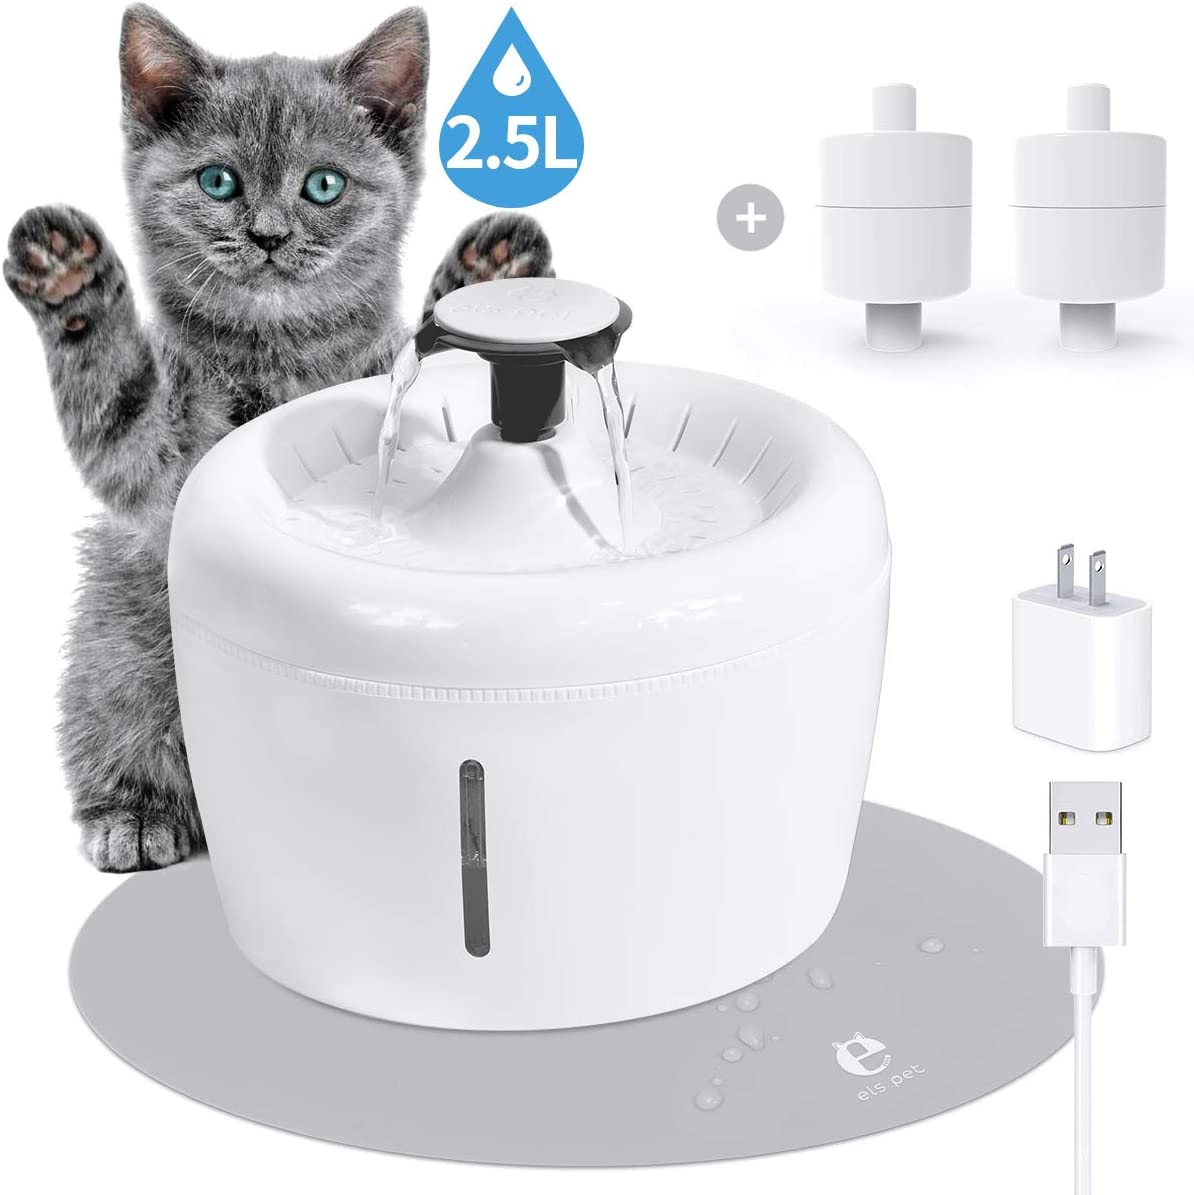 ELSPET Cat Water Fountain 84oz/2.5L Dog Drinking Dispenser, Flowing Fresh Water/Loop Filter/Ultra Silent Pump, Automatic Cat Water Fountain with 3 Pet Fountain Filters/1 Silicone Mat